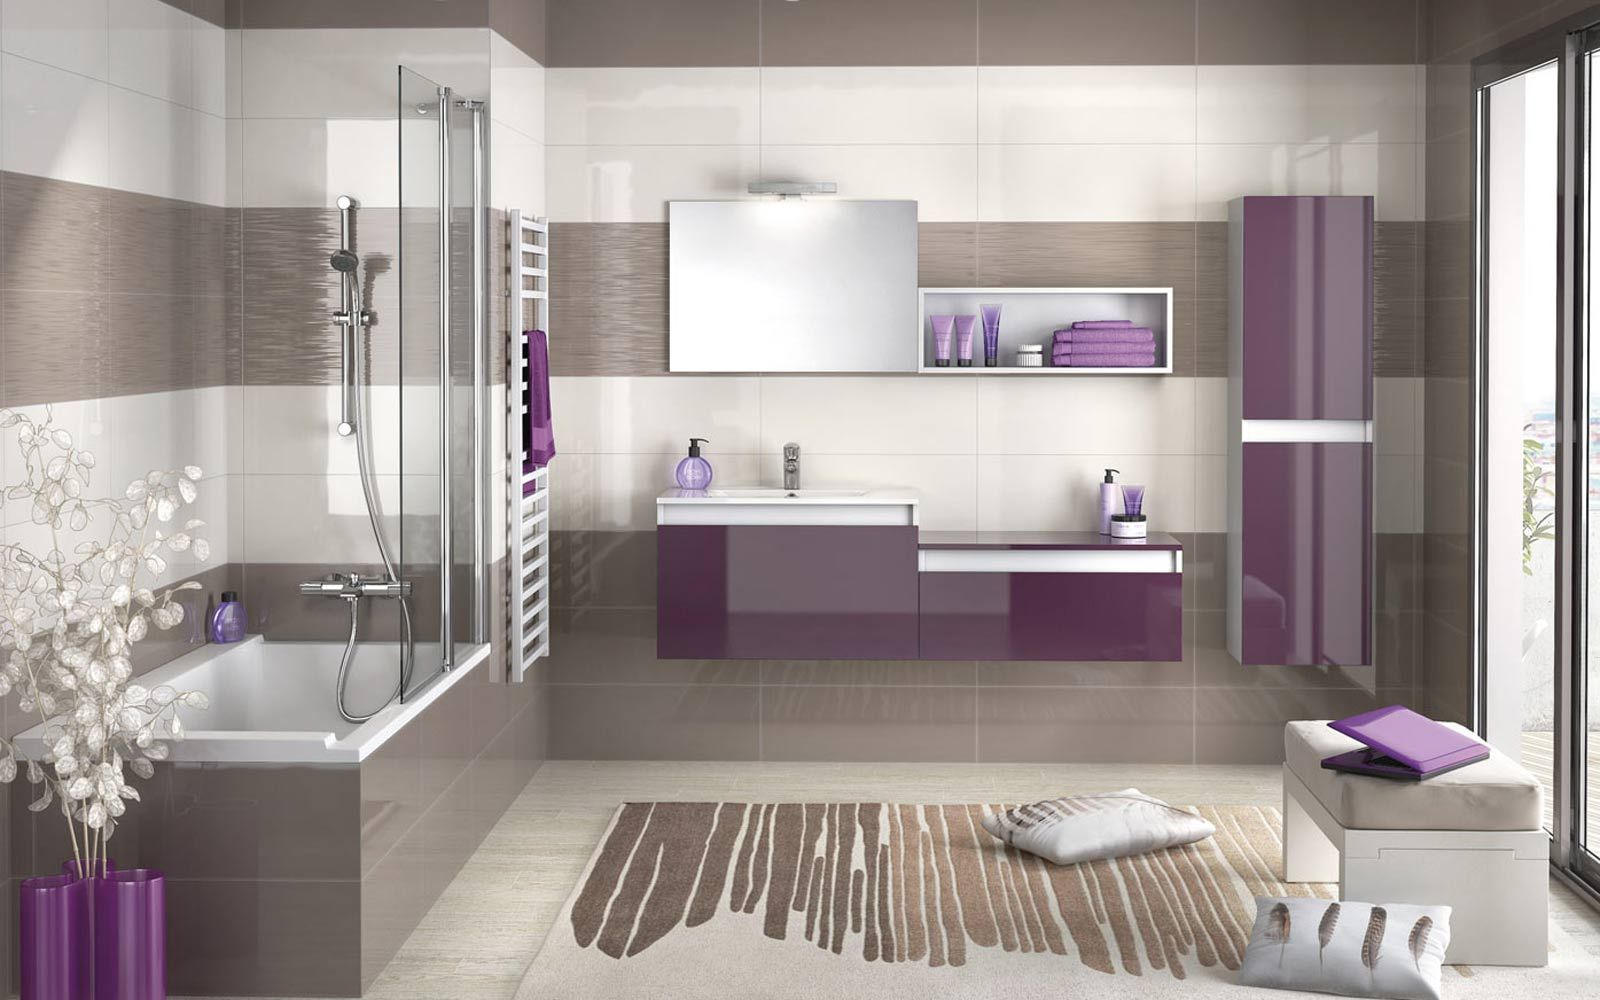 collection de salle de bain violette delpha d motion espace aubade salle de bain pinterest. Black Bedroom Furniture Sets. Home Design Ideas